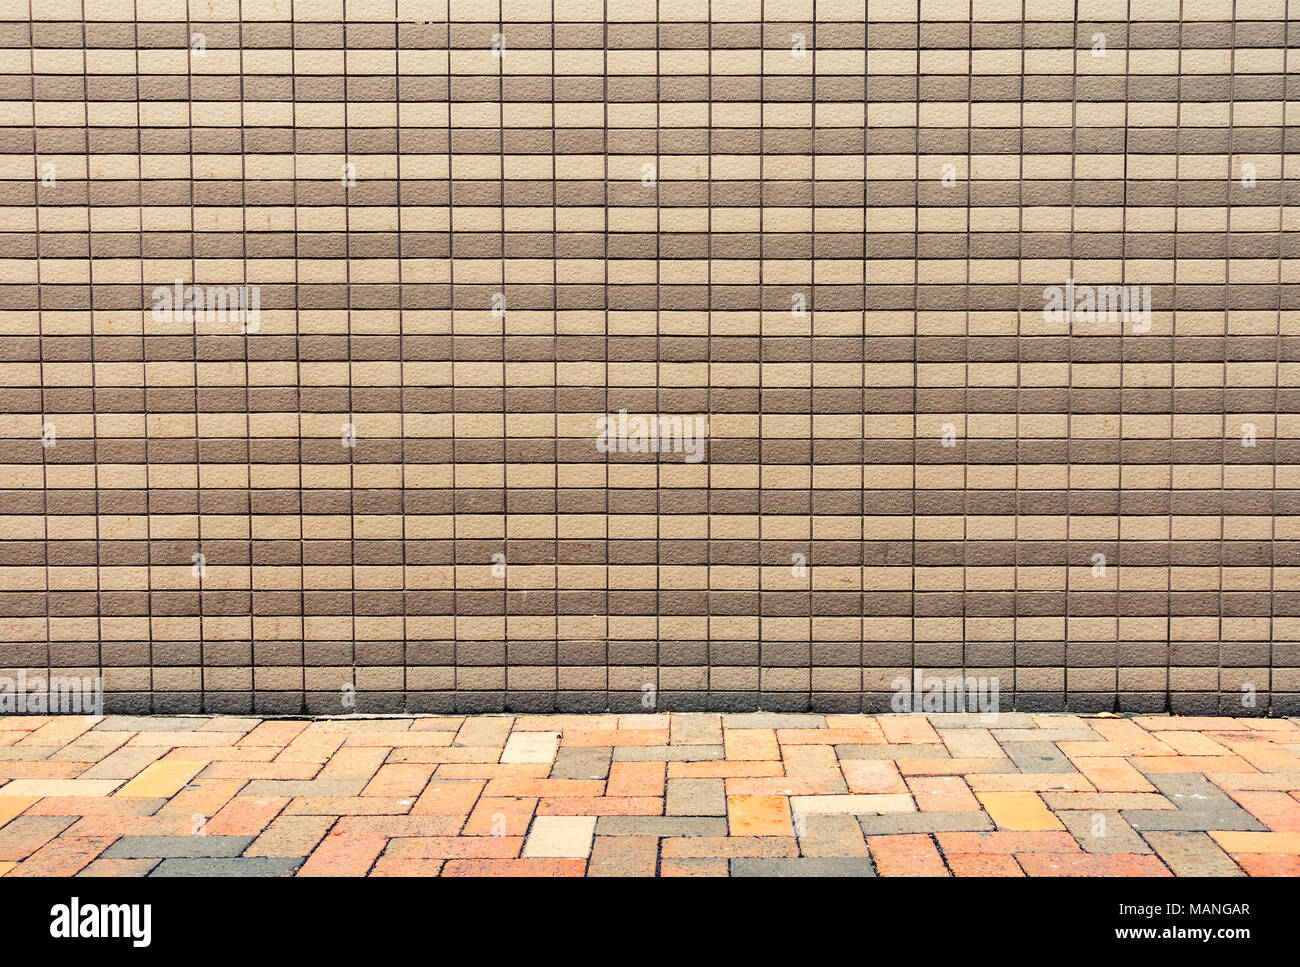 Ceramic tile background on exterior wall Stock Photo: 178724079 - Alamy